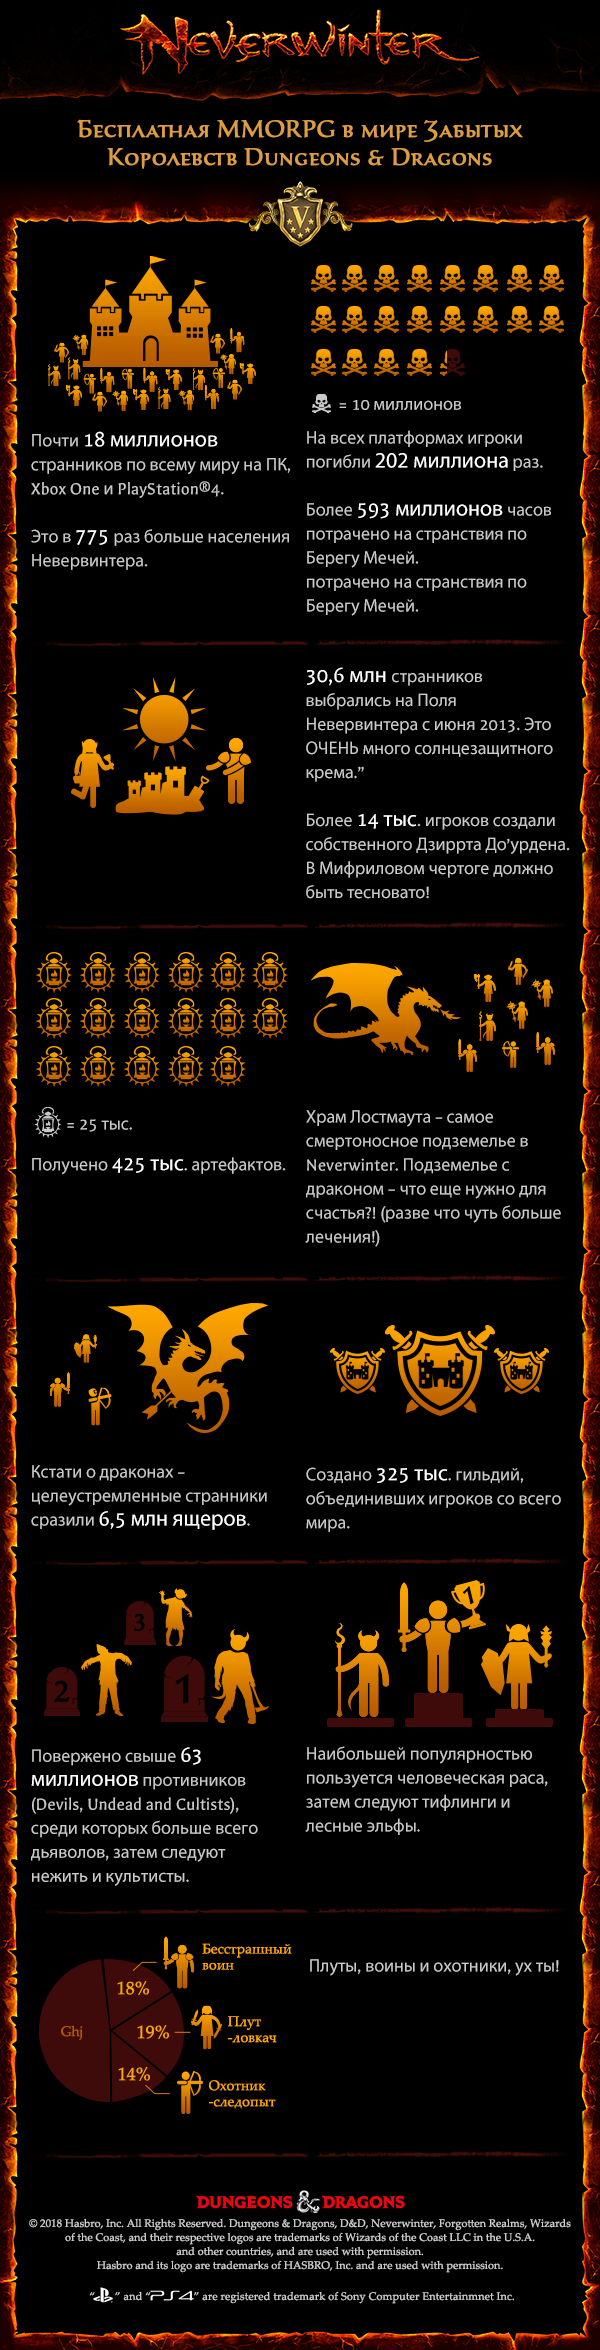 072118-NW_infographic_20180615_RU.png